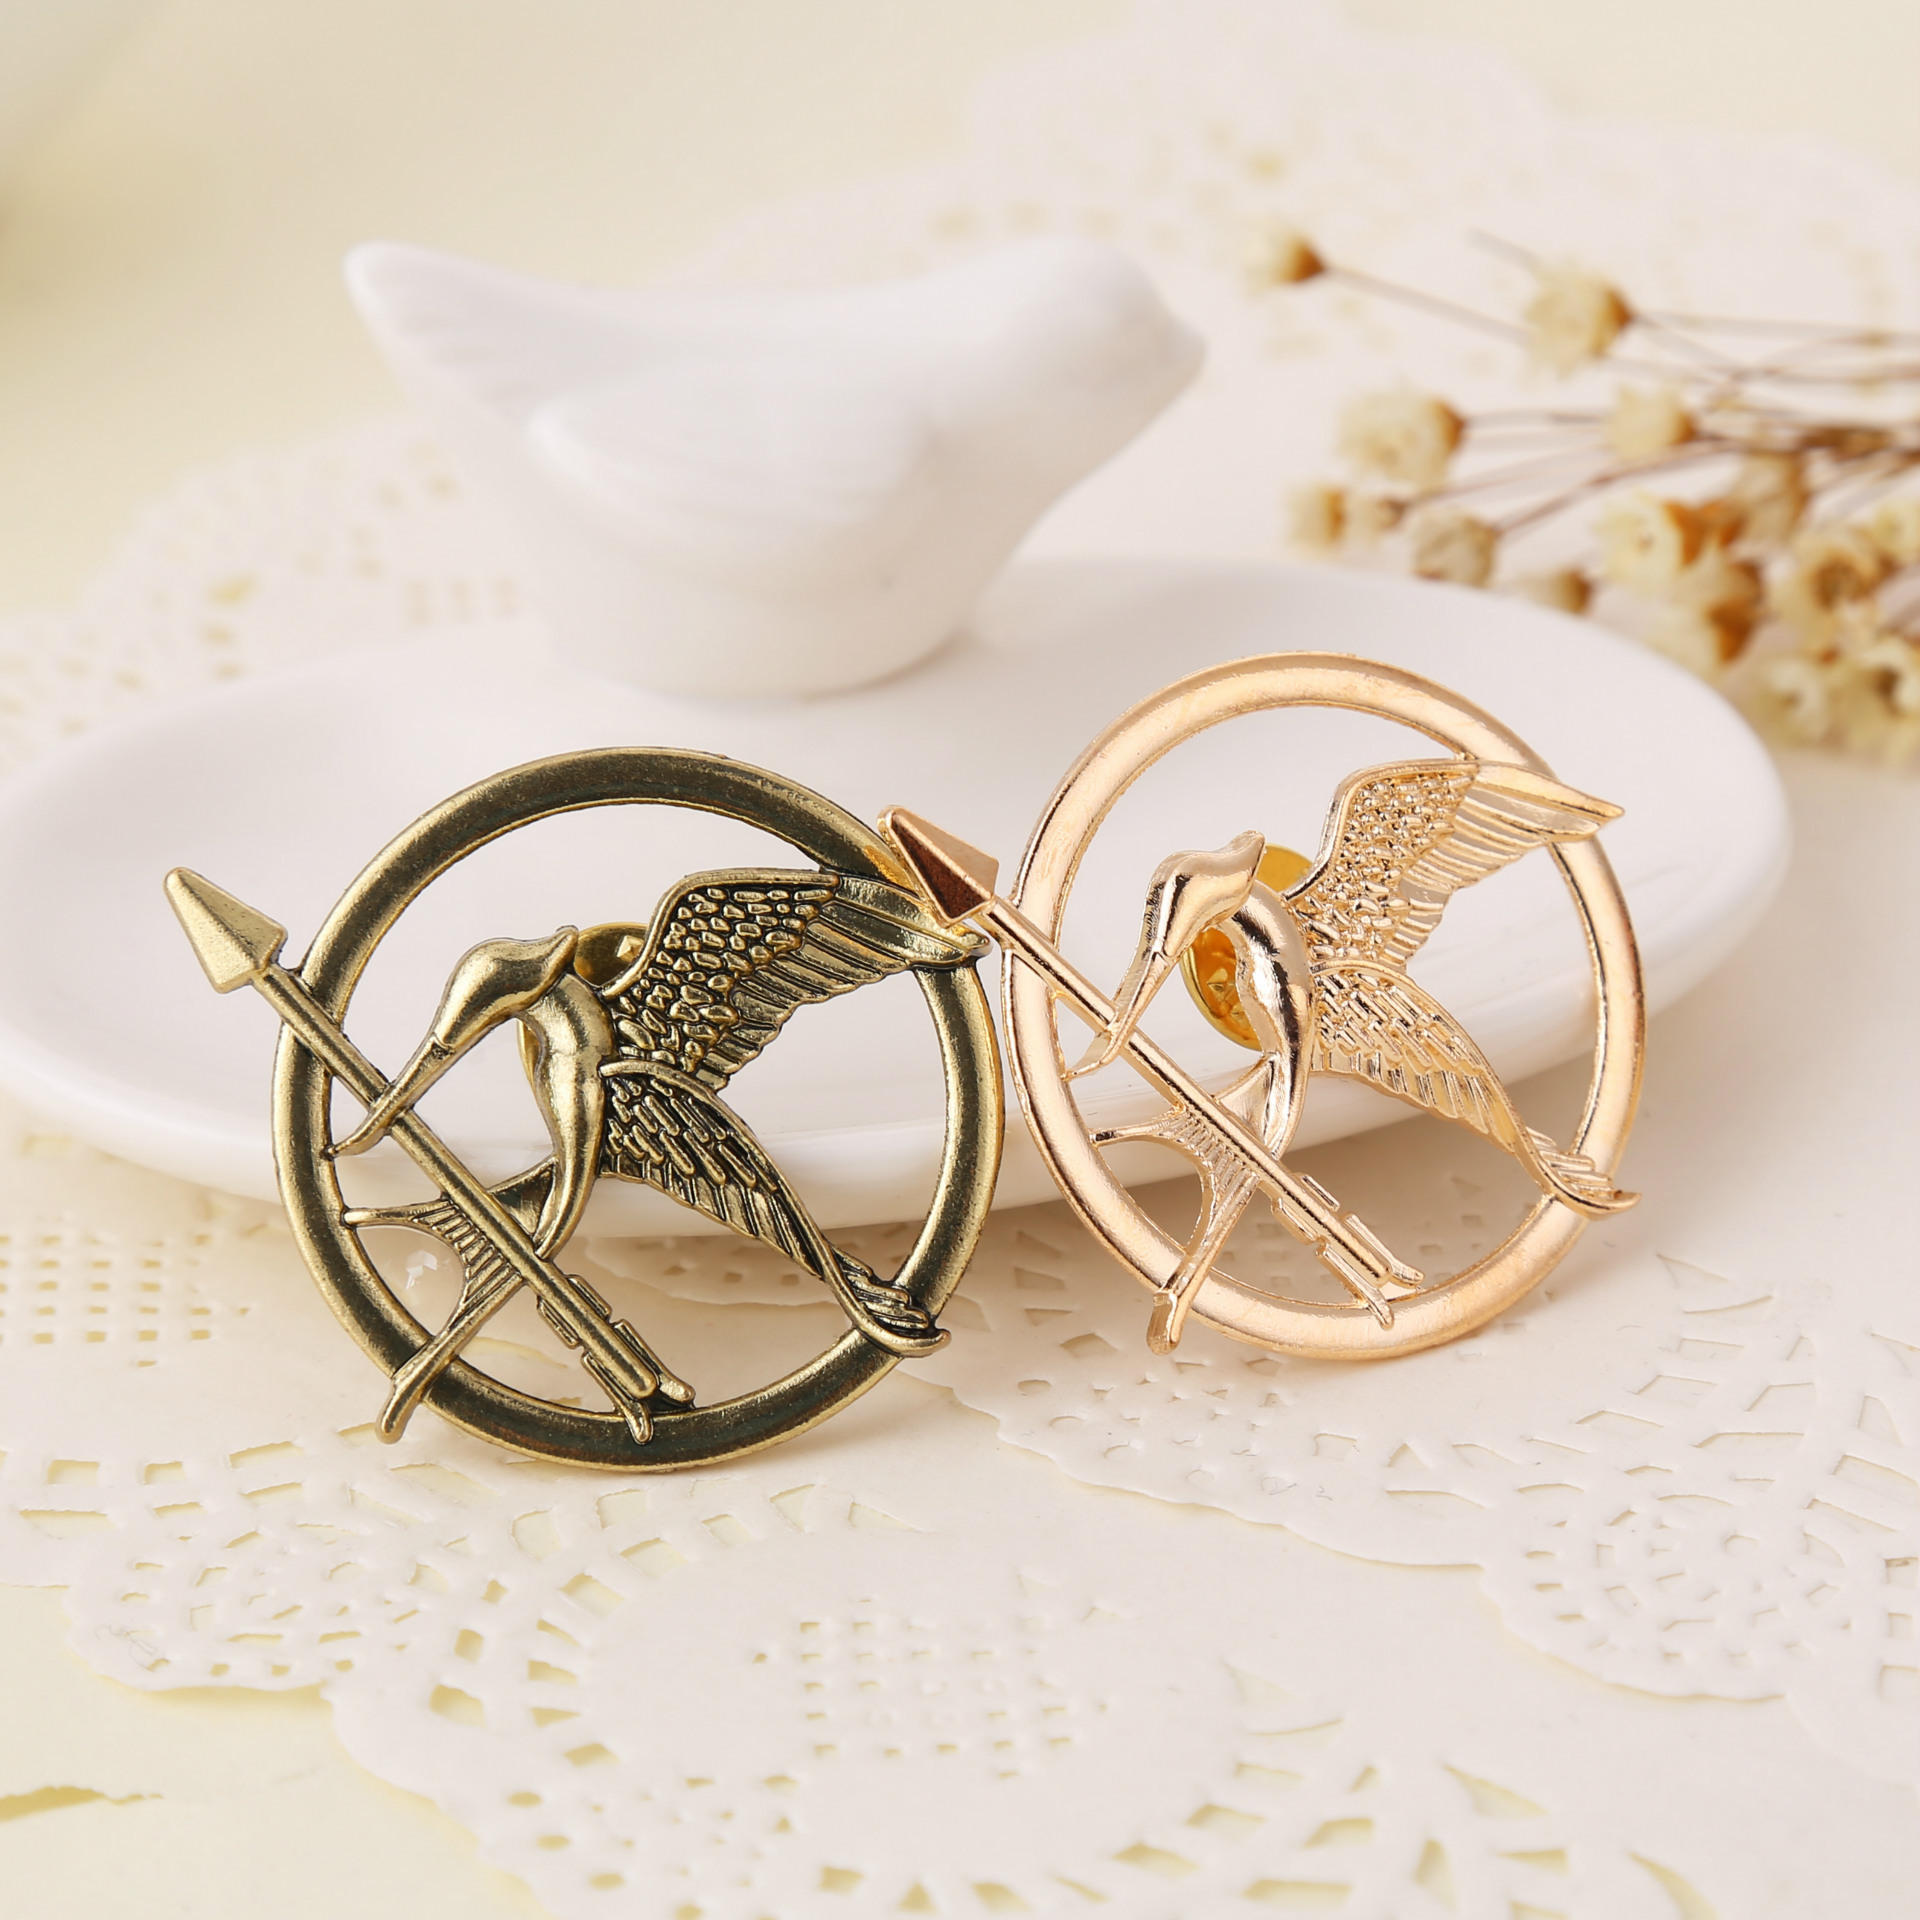 Solar System The Hunger Games Jay antique bronze Christmas gift shawl badge pin bag brooch for